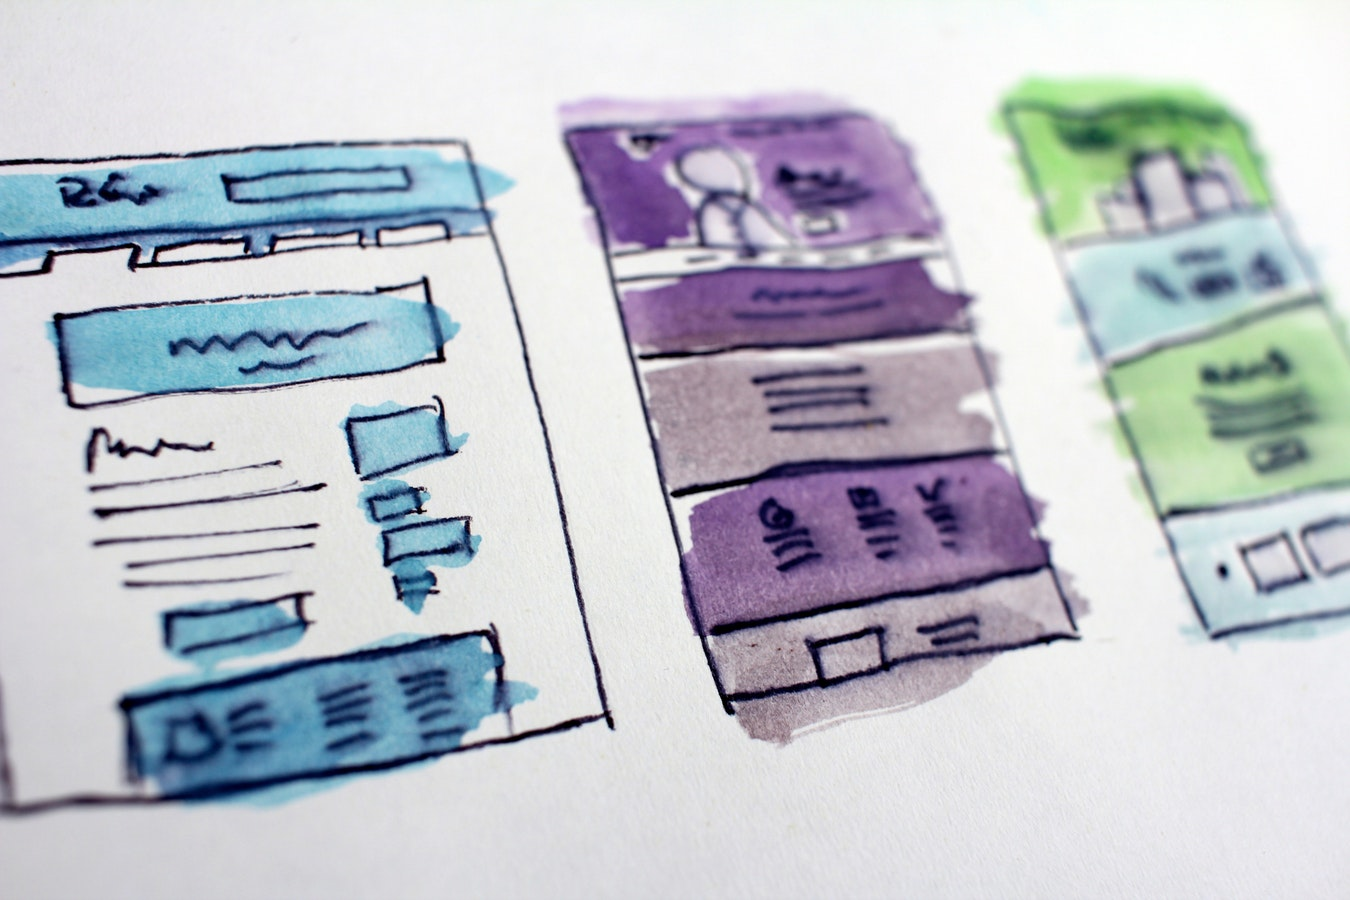 How Prototyping Can Help You Prevent a Mobile UI Disaster